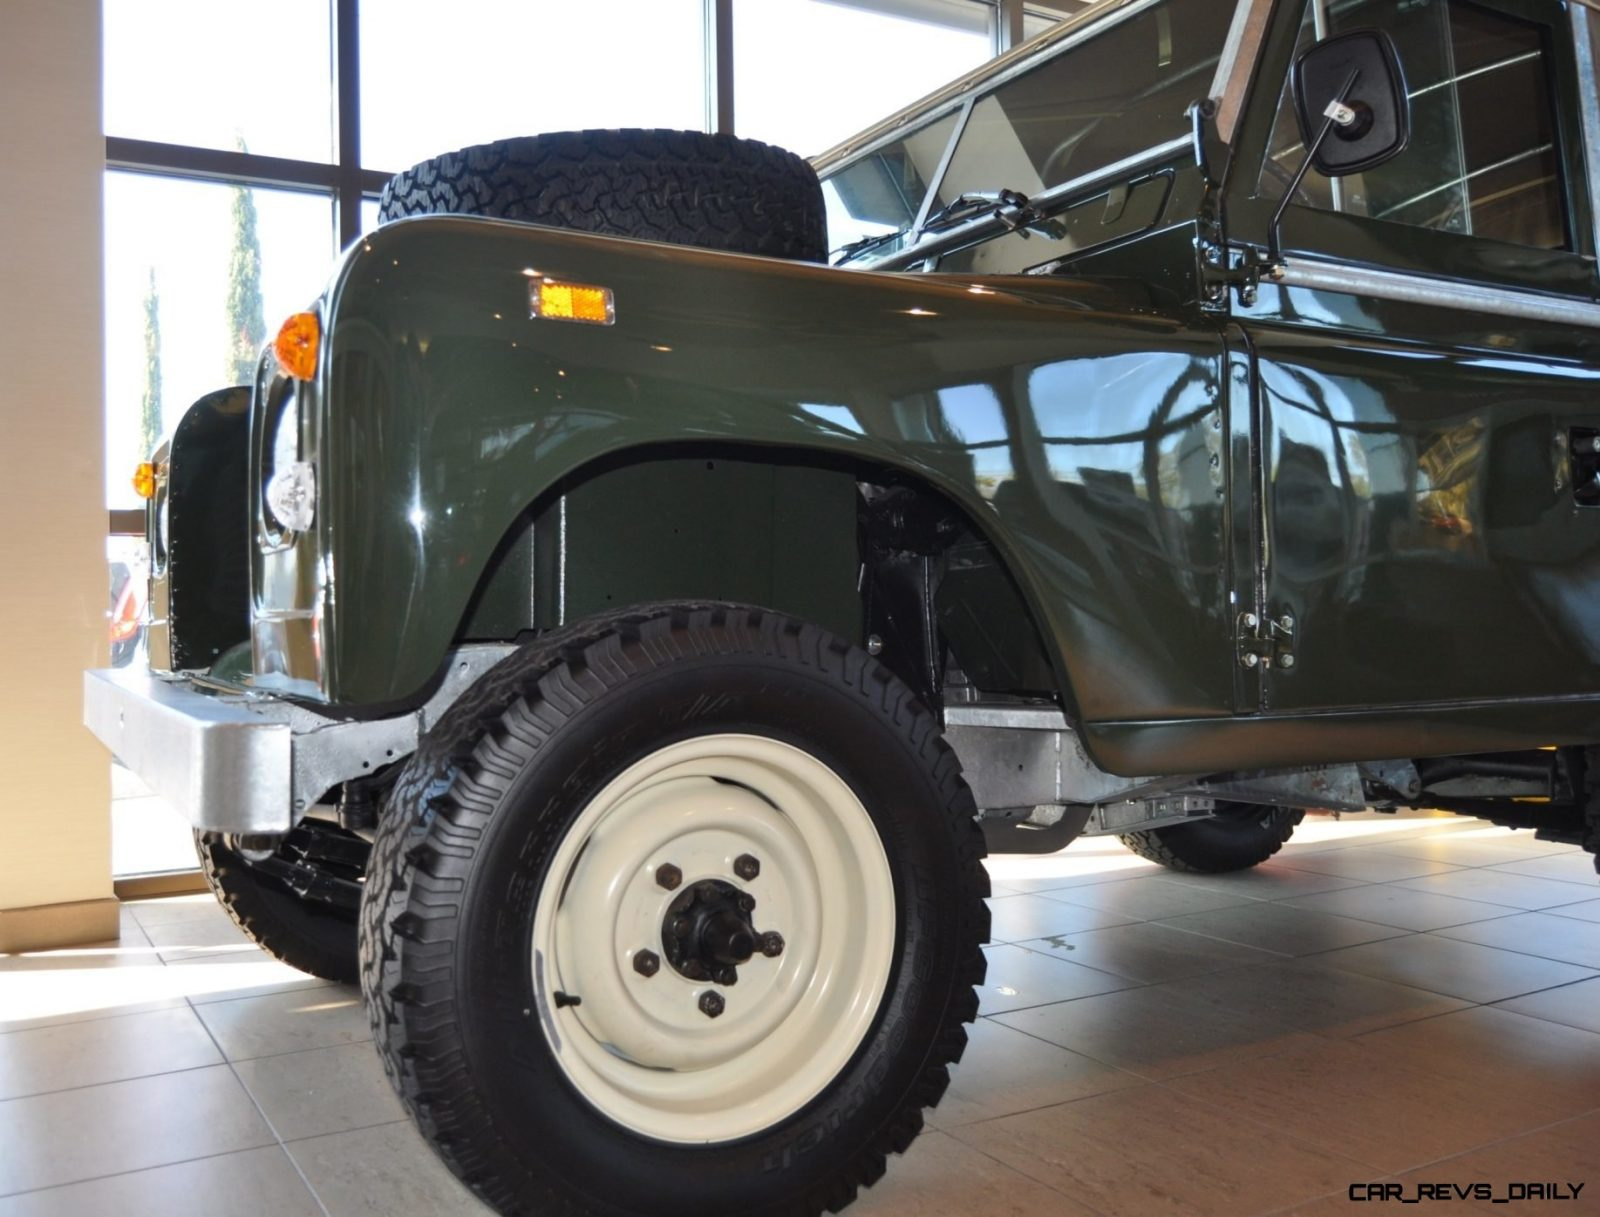 Video Walk-around and Photos - Near-Mint 1969 Land Rover Series II Defender at Baker LR in CHarleston 16